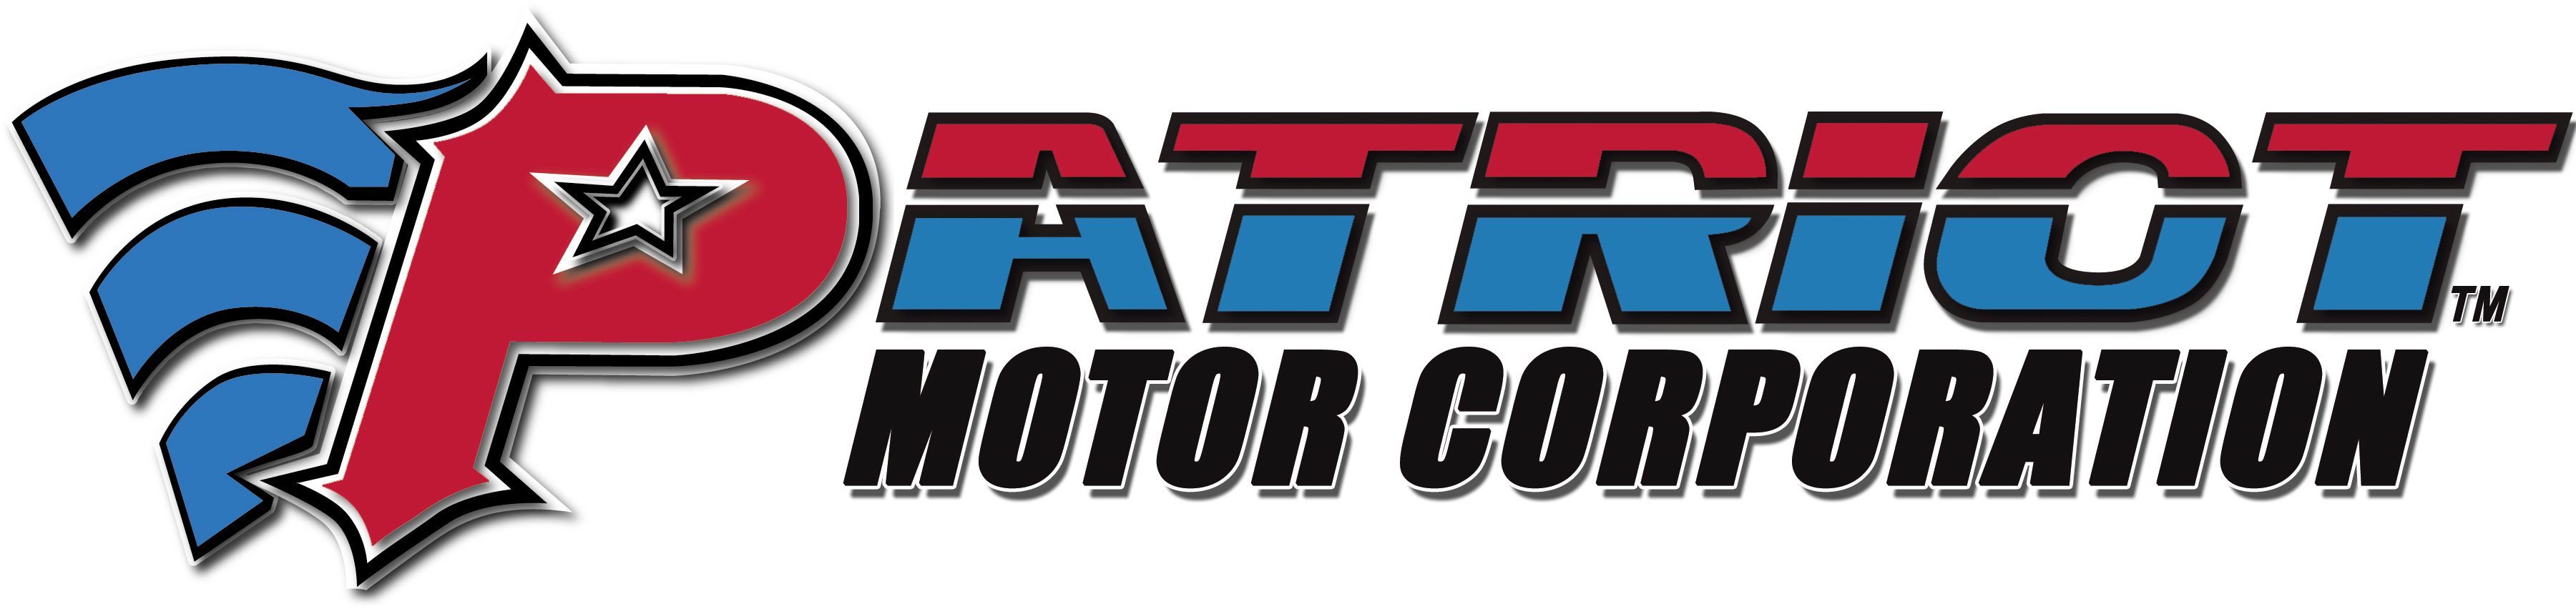 Patriot Motor Corporation Logo